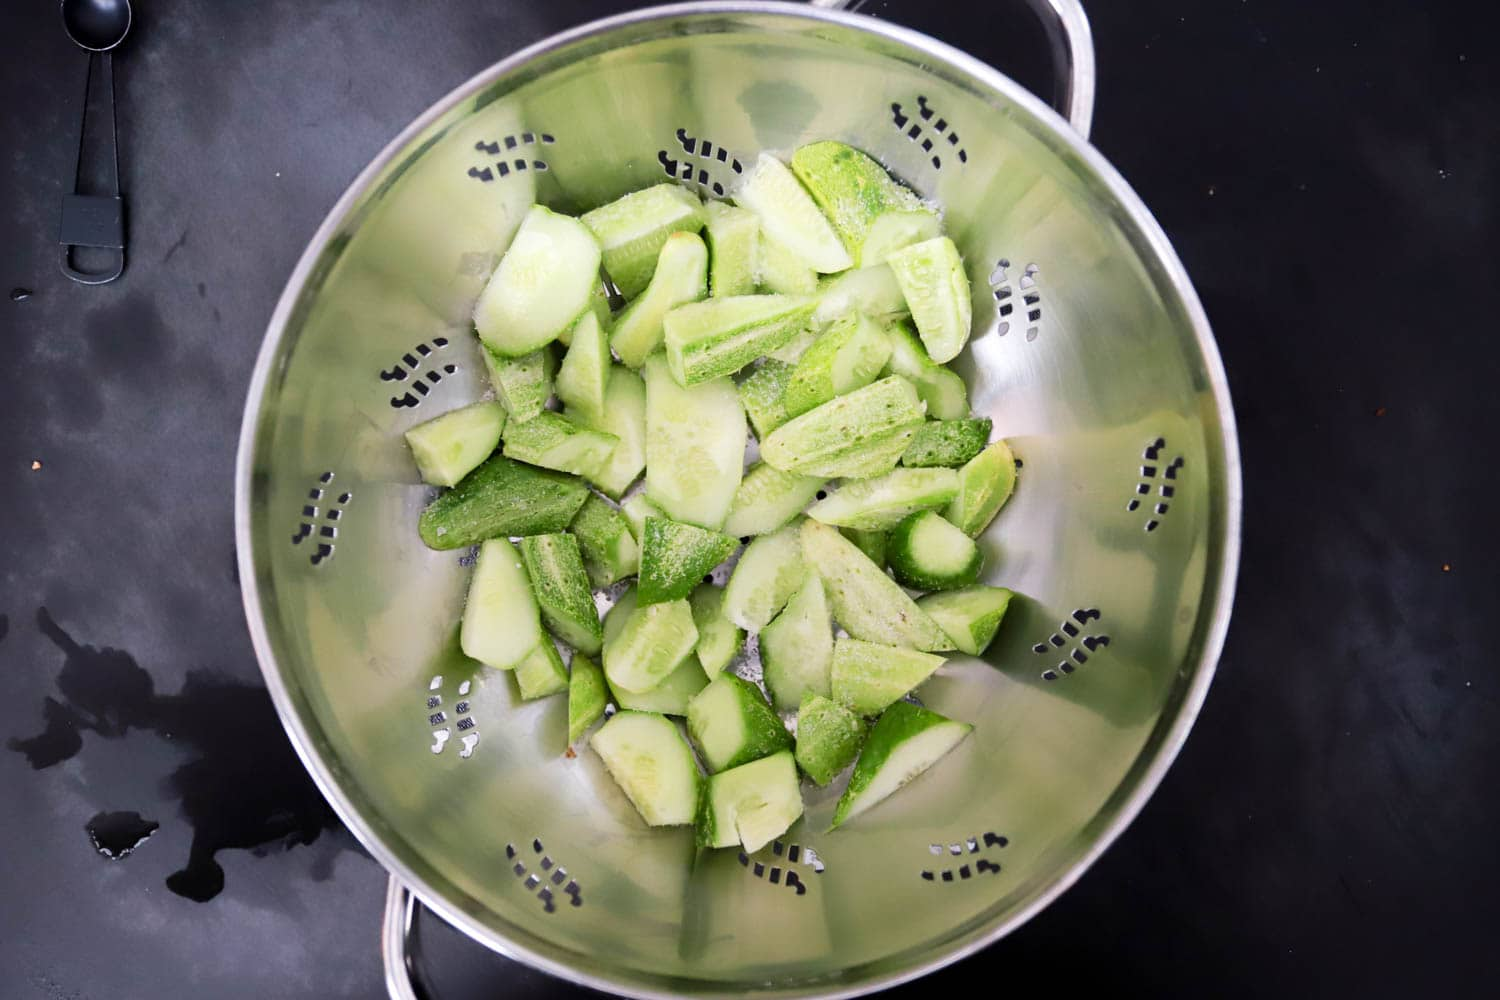 How to make smashed cucumbers easy recipe